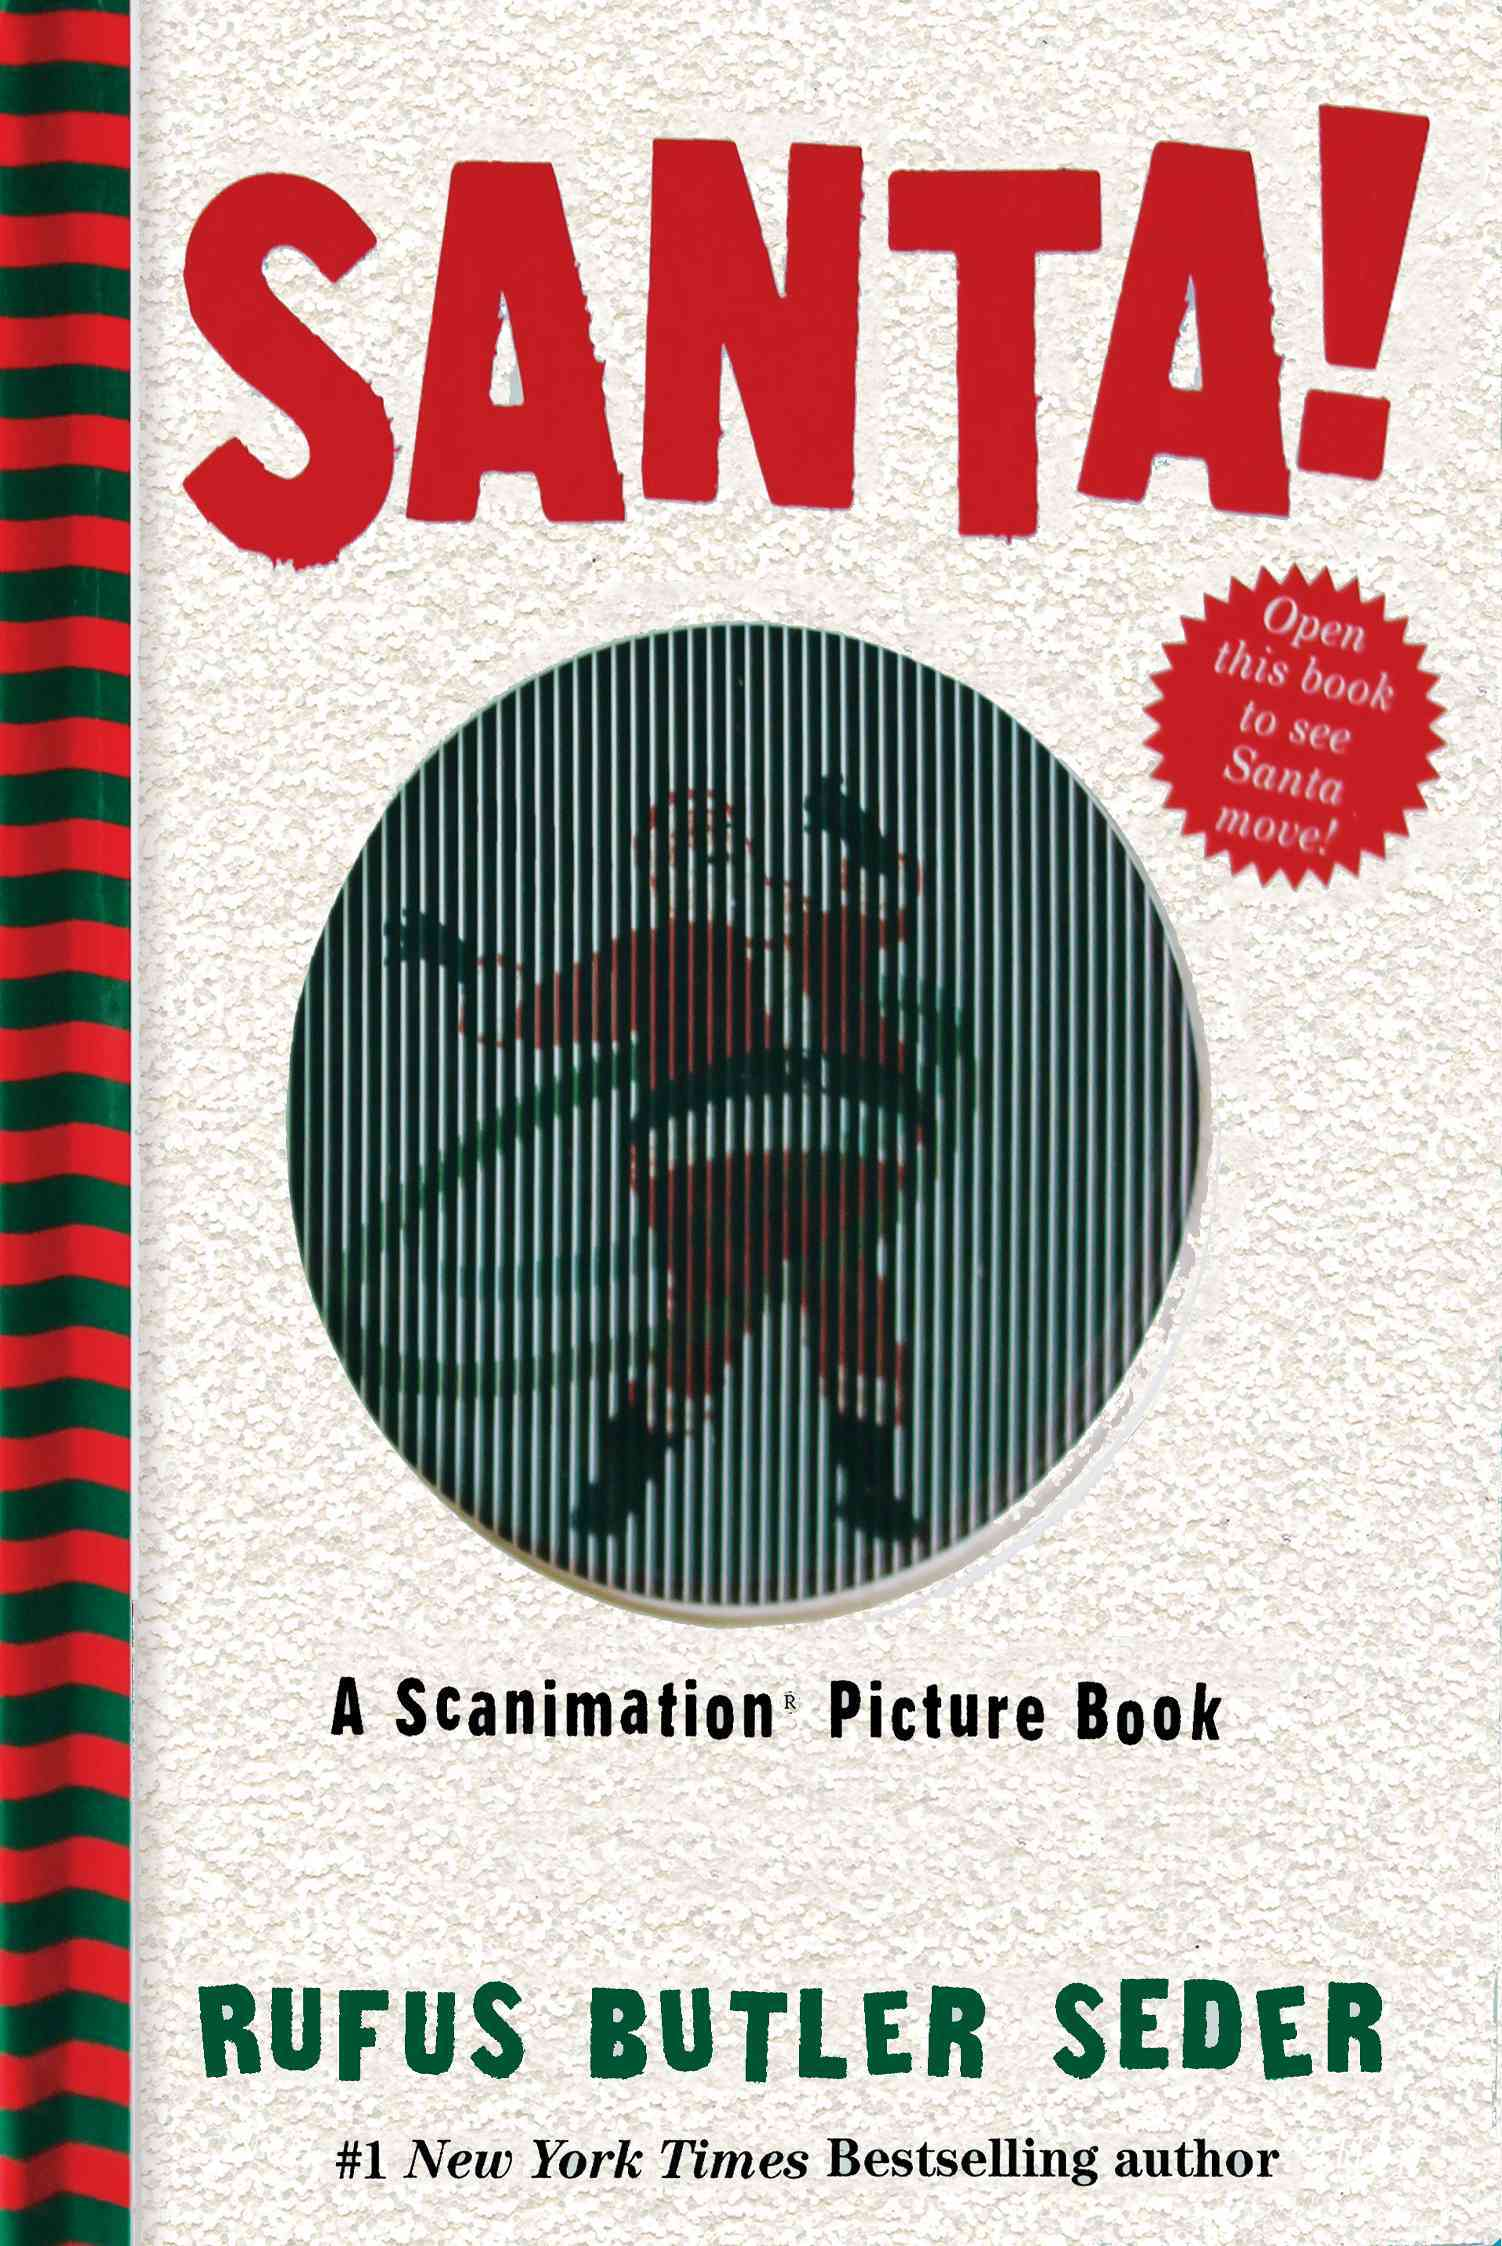 Santa!: A Scanimation Picture Book (Hardcover)